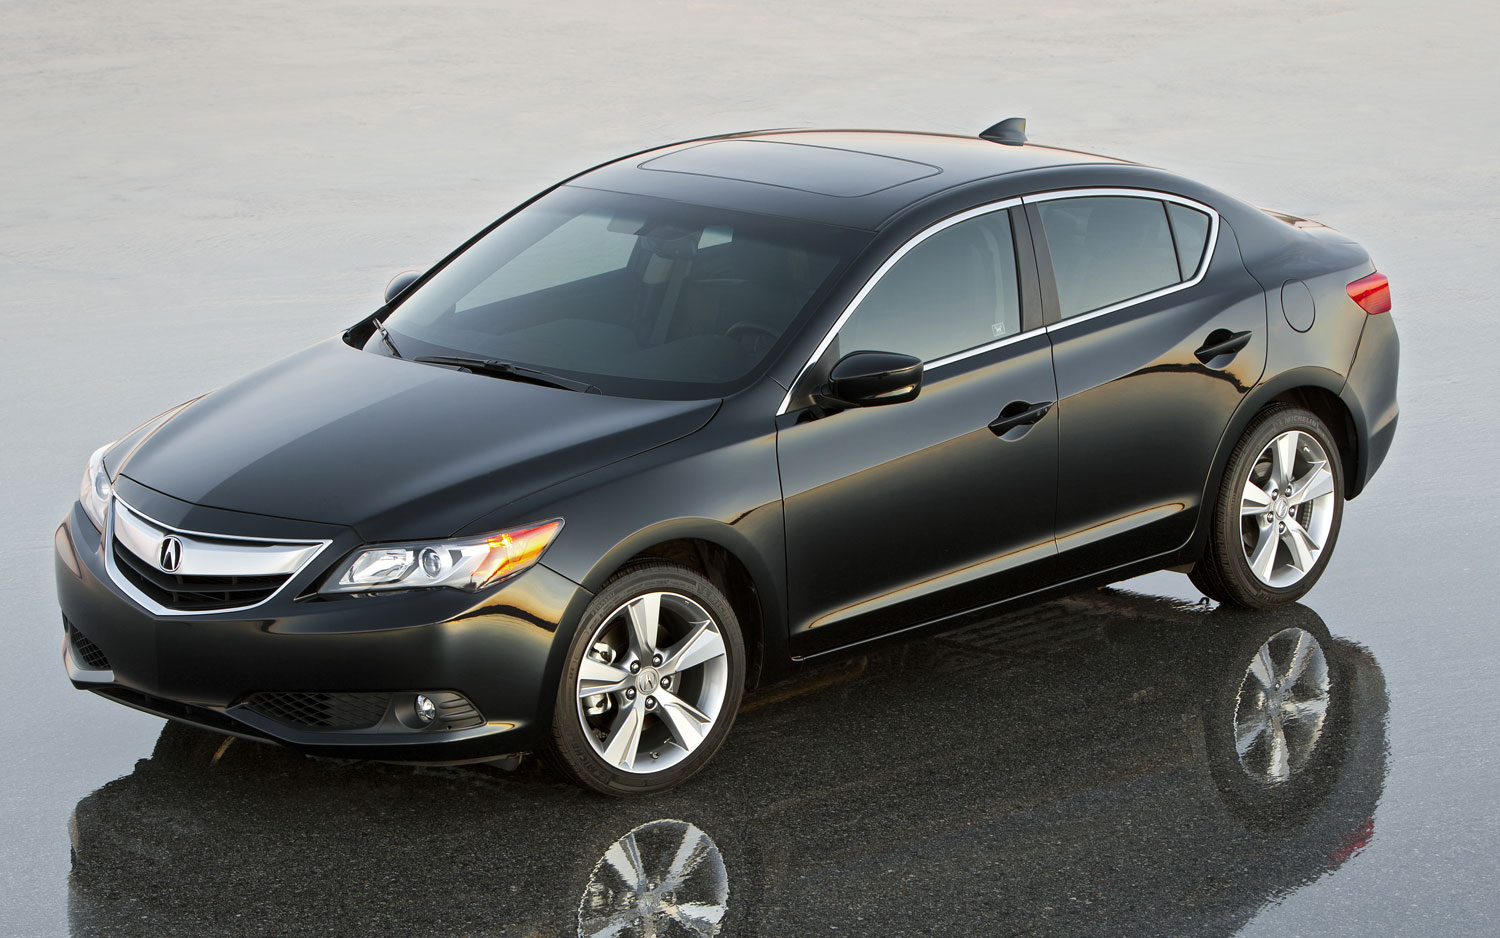 2014 Acura ILX Left Side Front View1